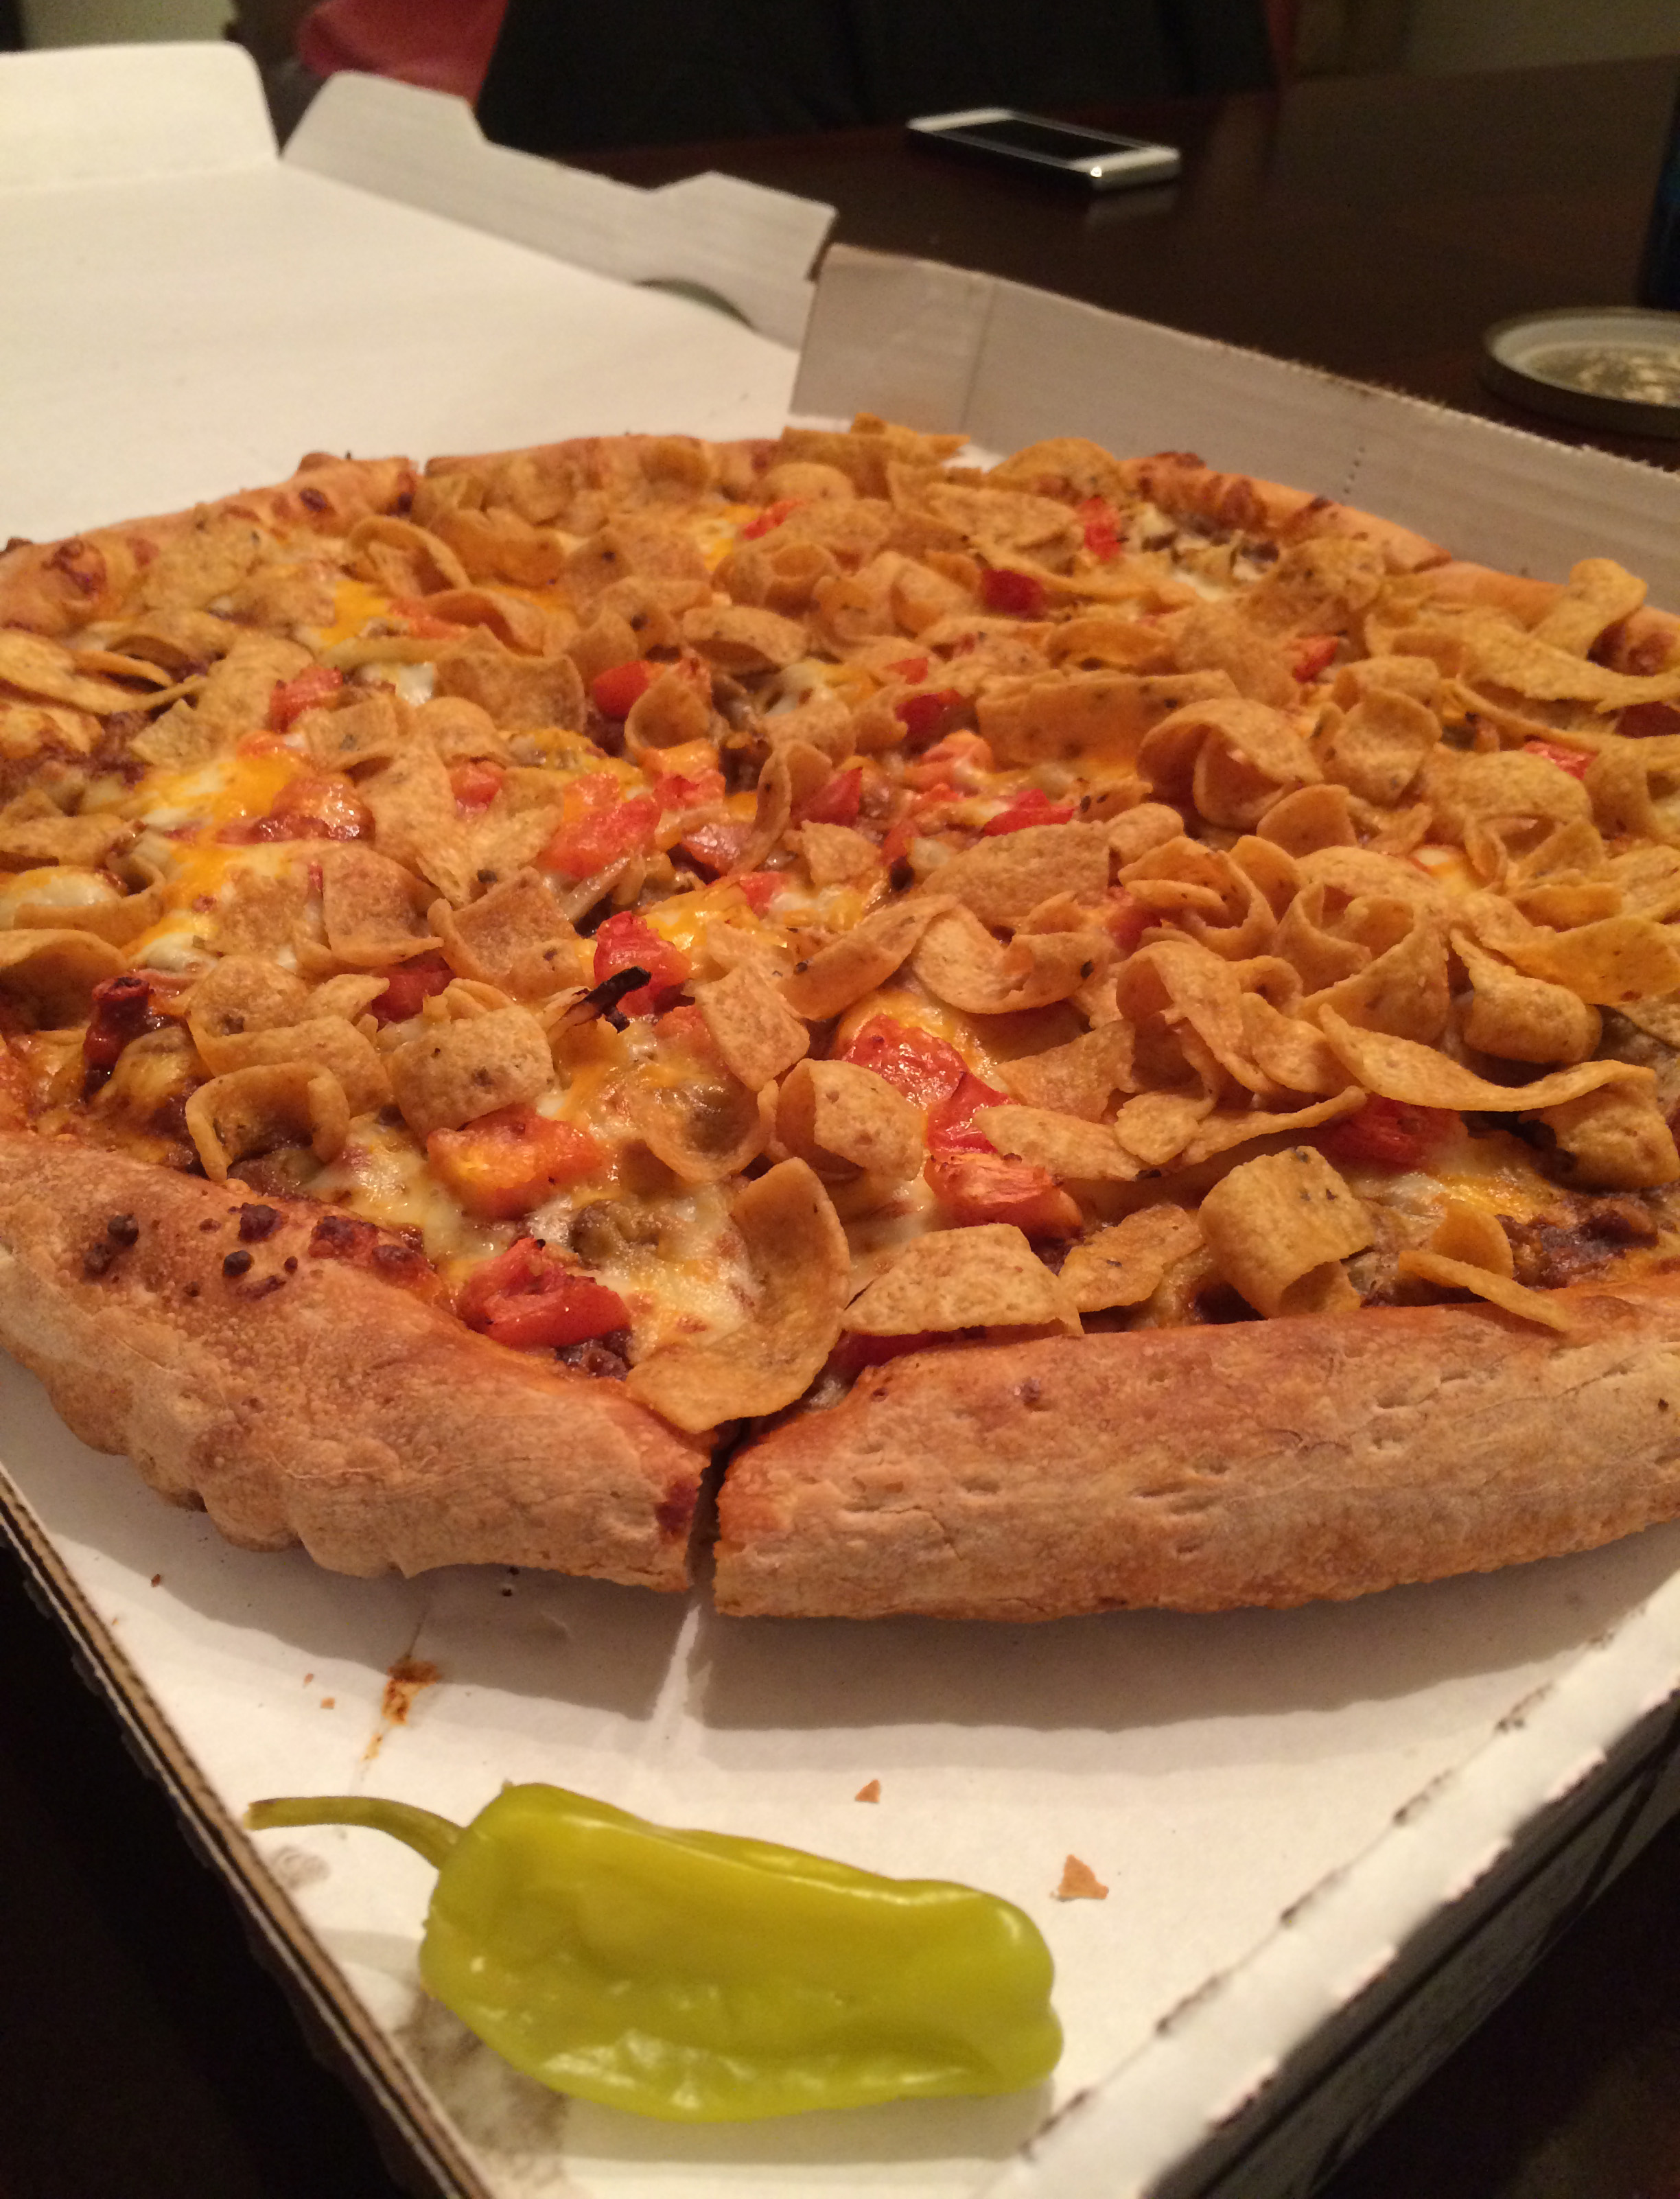 Another view of the Fritos Chili Pizza.